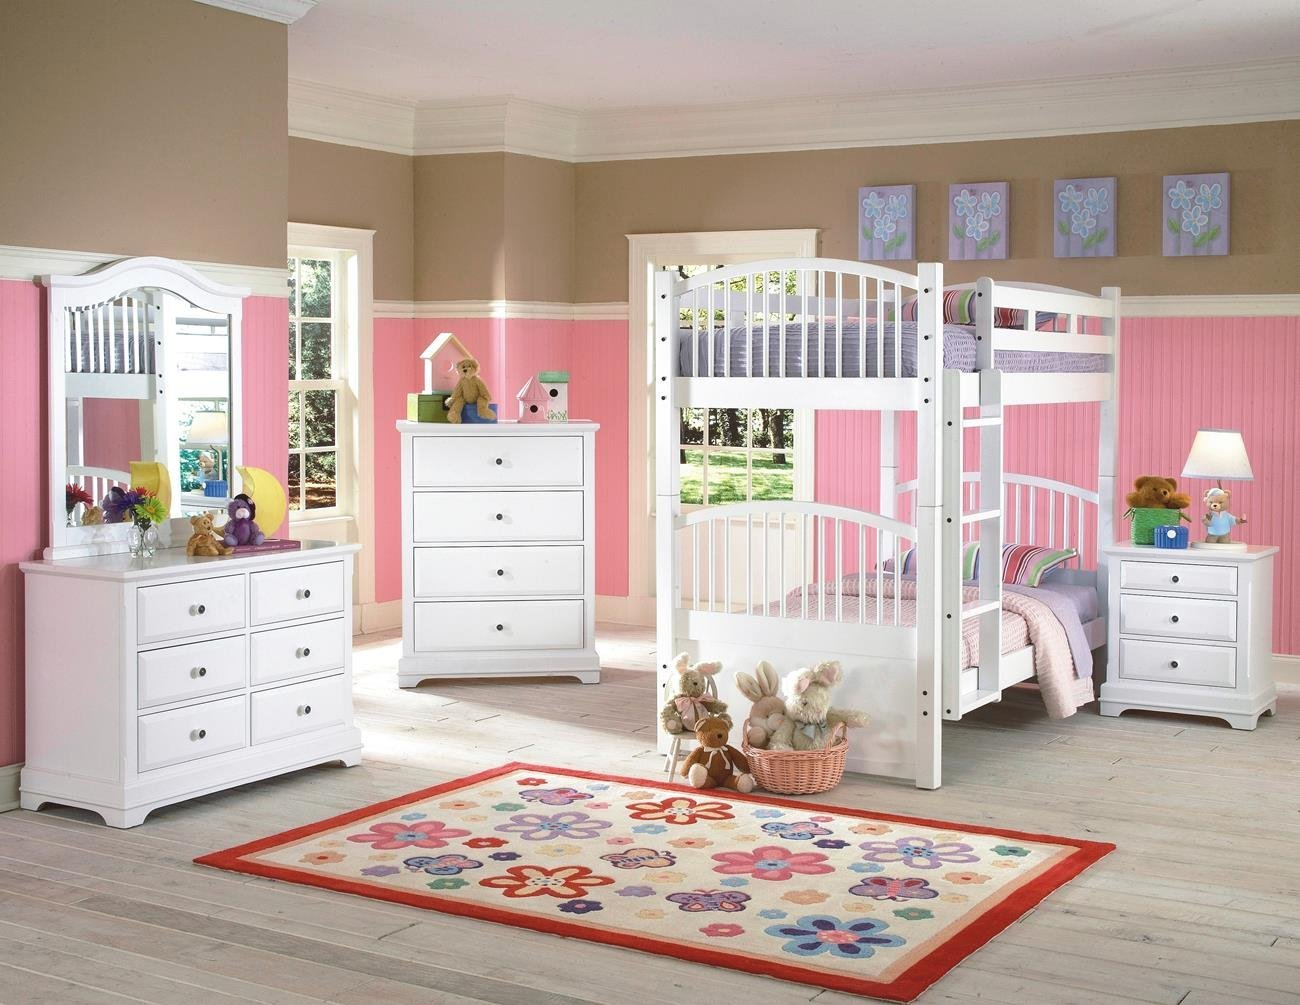 Beatrice Youth 5 Piece Twin/Twin Bunk Bedroom Set in White Finish by NCF Furniture